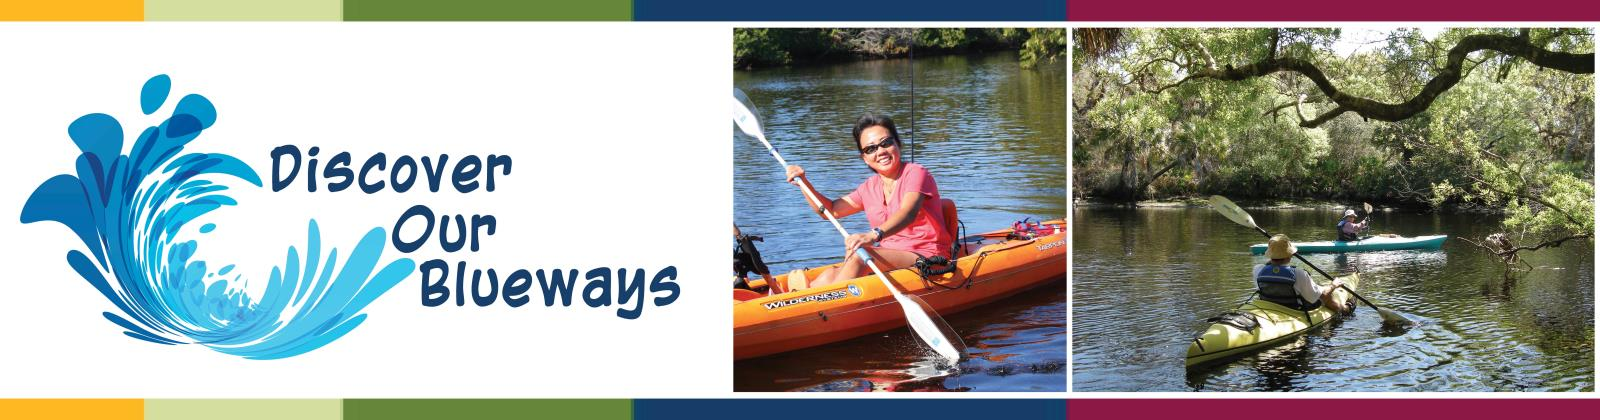 Discover our Blueways! Photos of people kayaking on the waterways